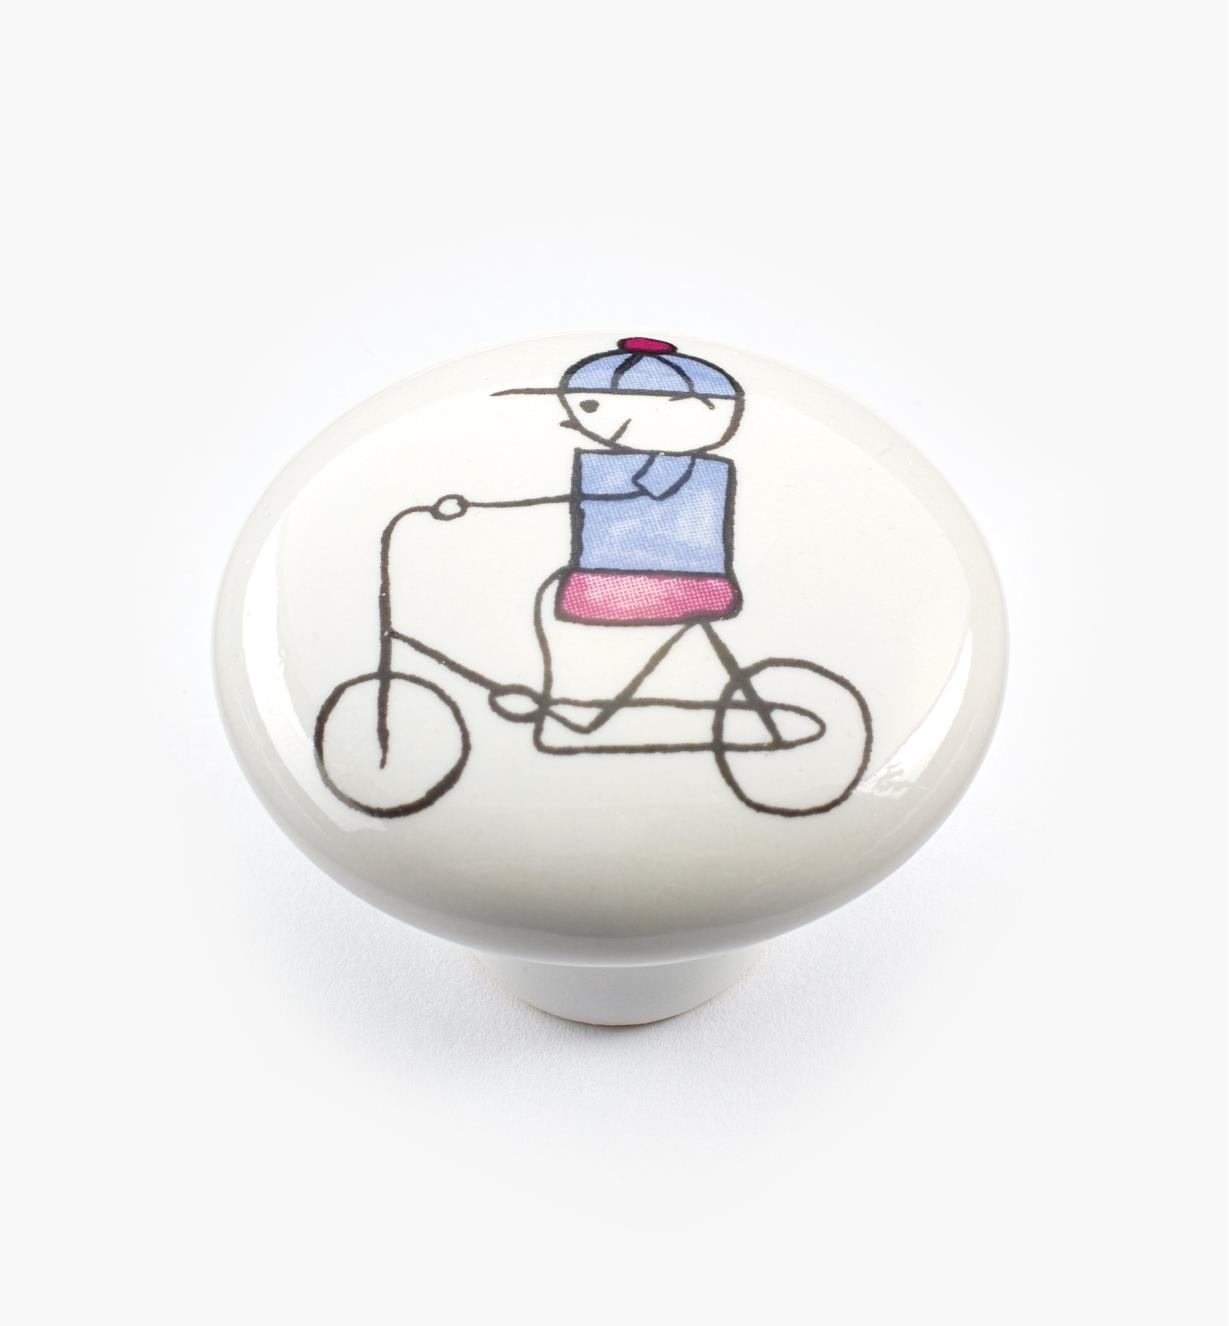 00W5311 - Bicycle Knob